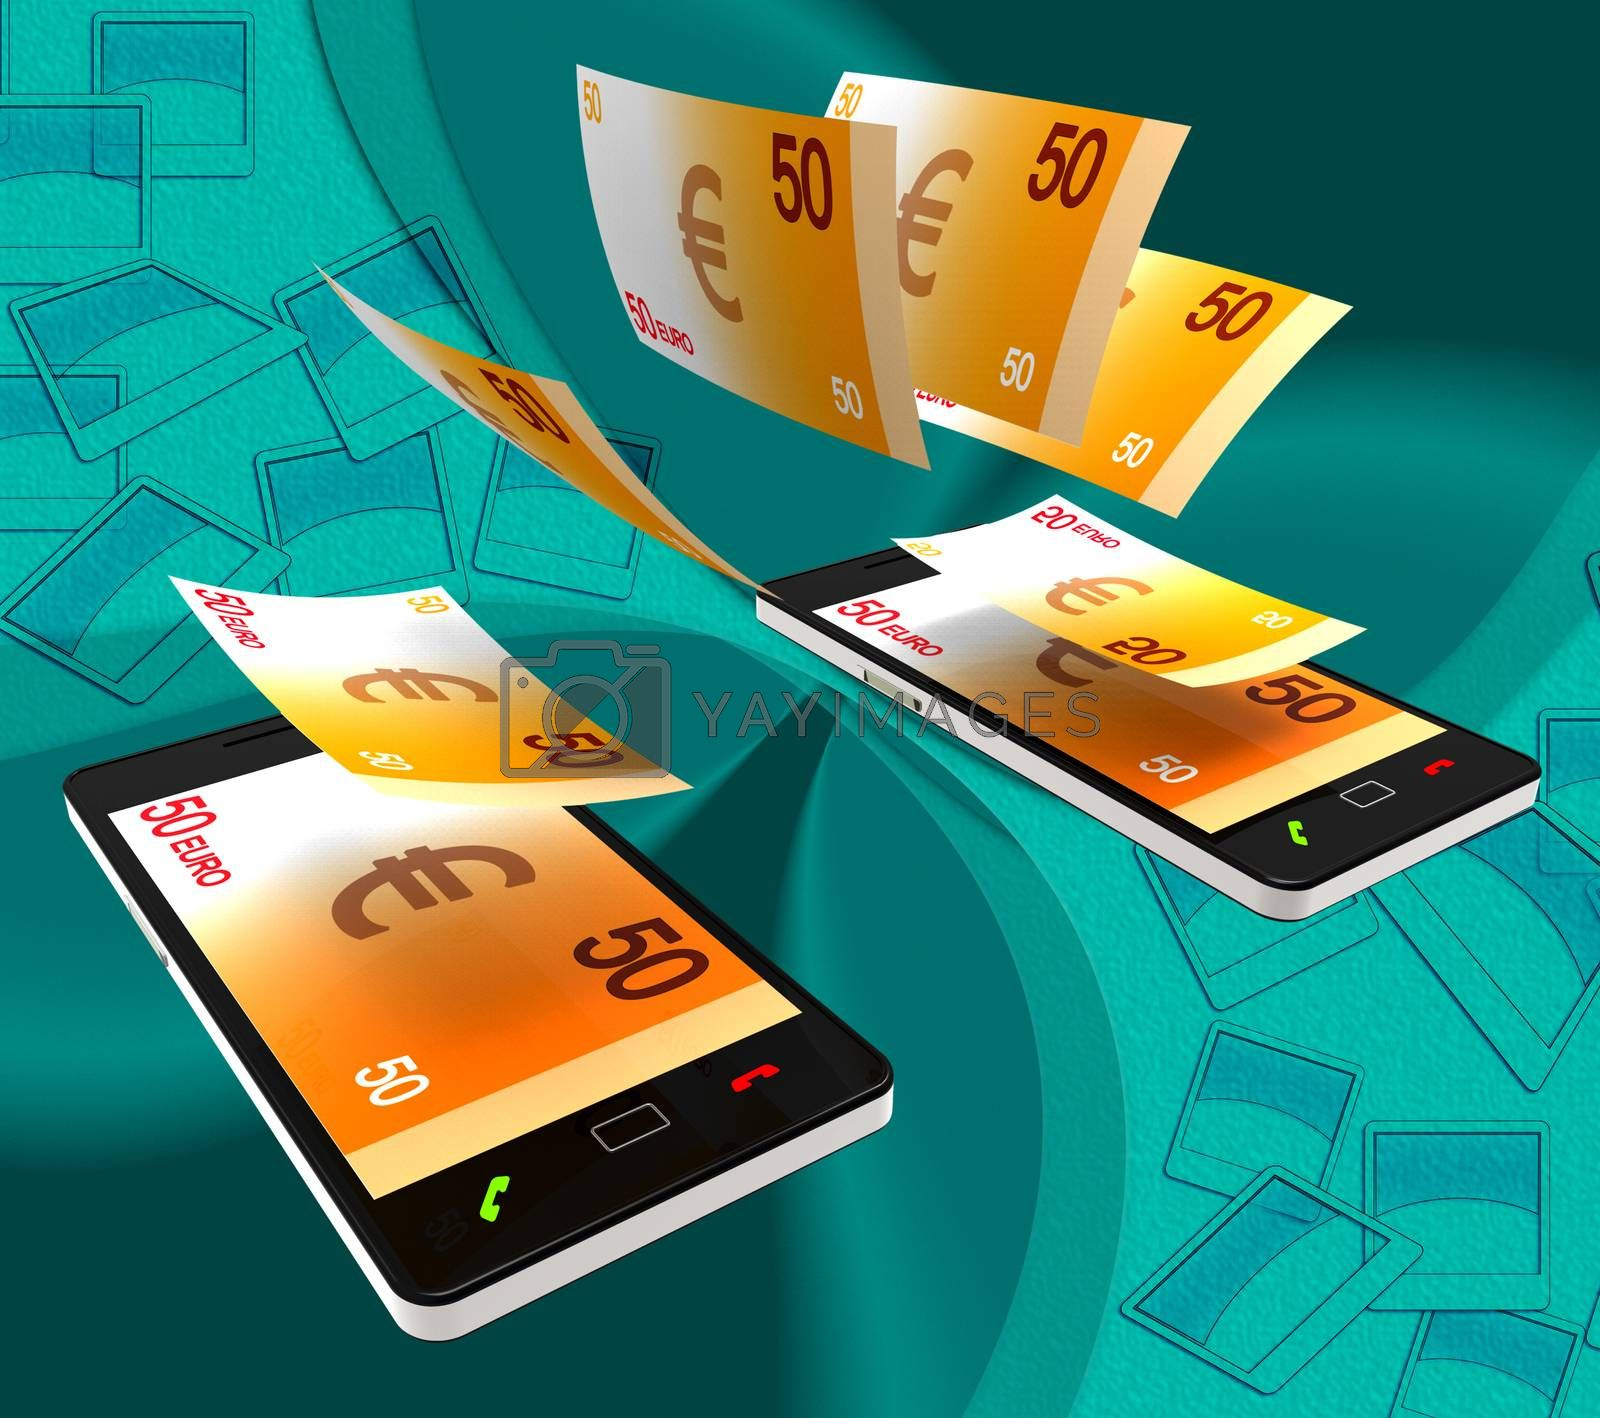 Euros Transfer Indicates Exchanging Money And Cash by stuartmiles